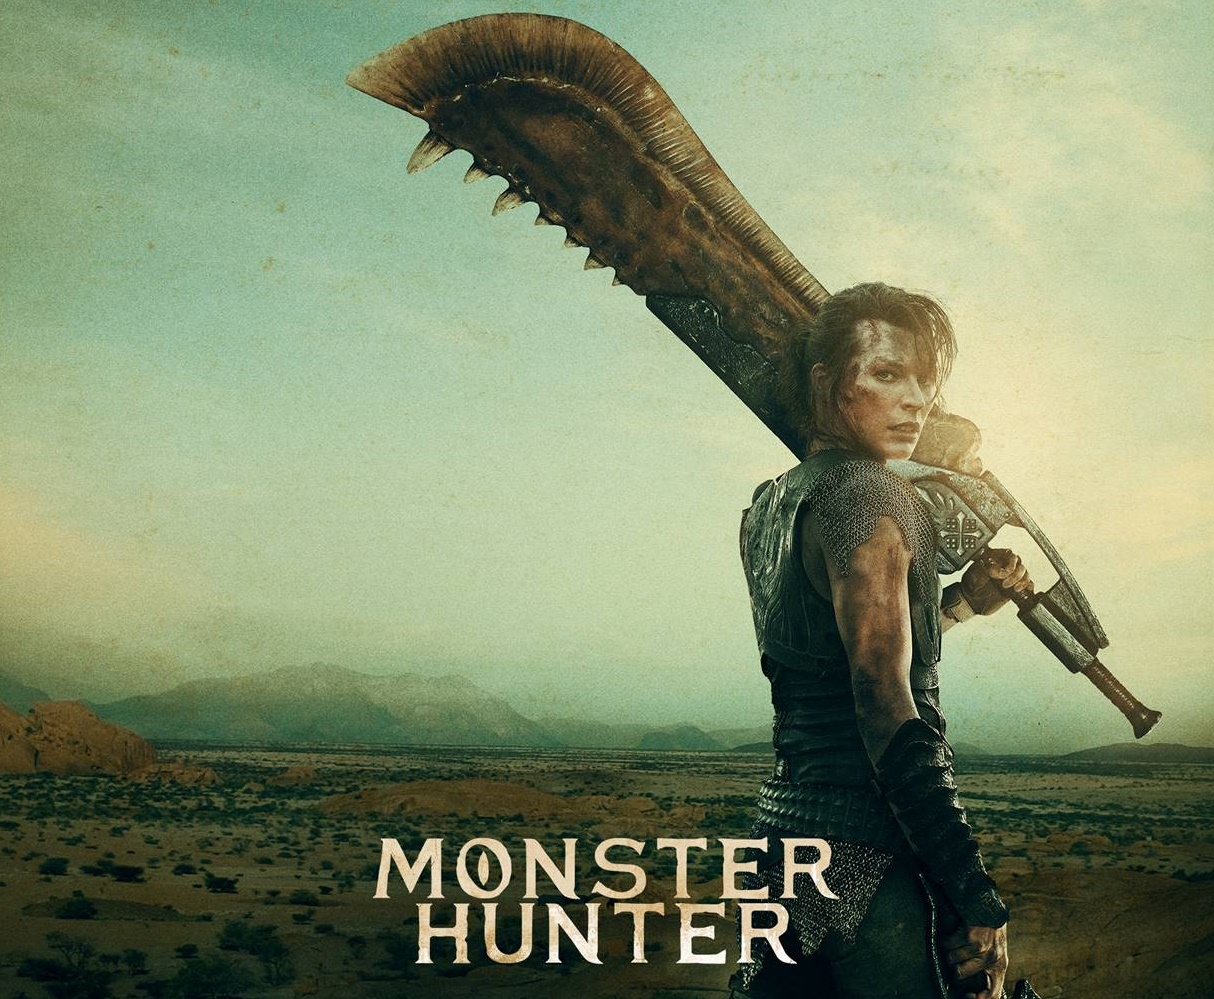 monster hunter poster crop